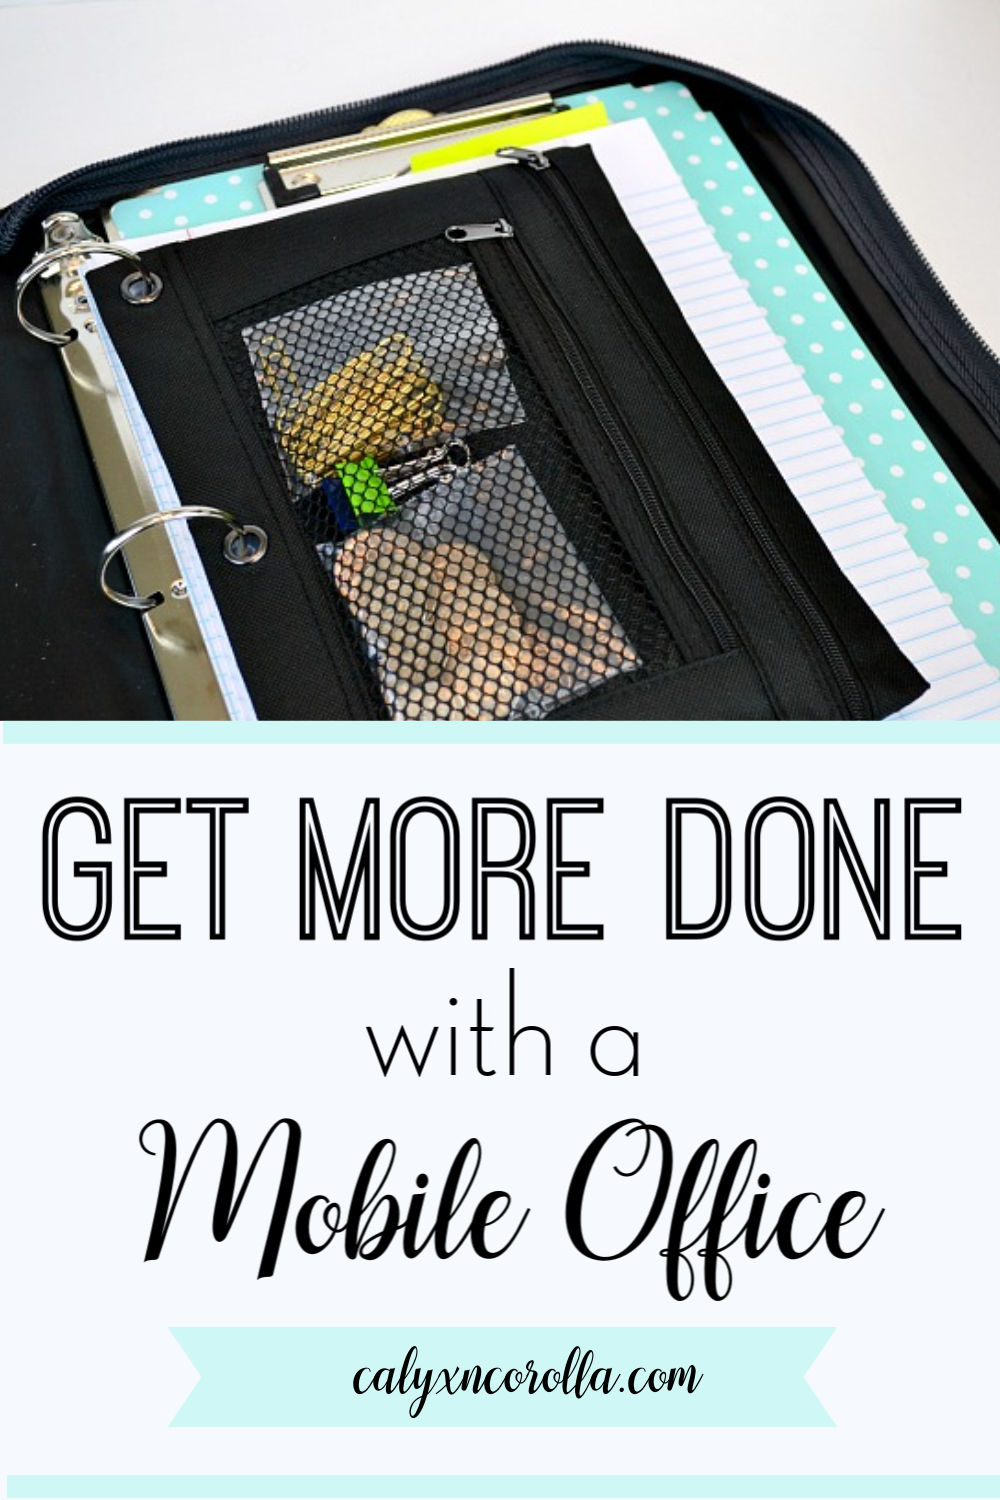 Get More Done with a Mobile Office